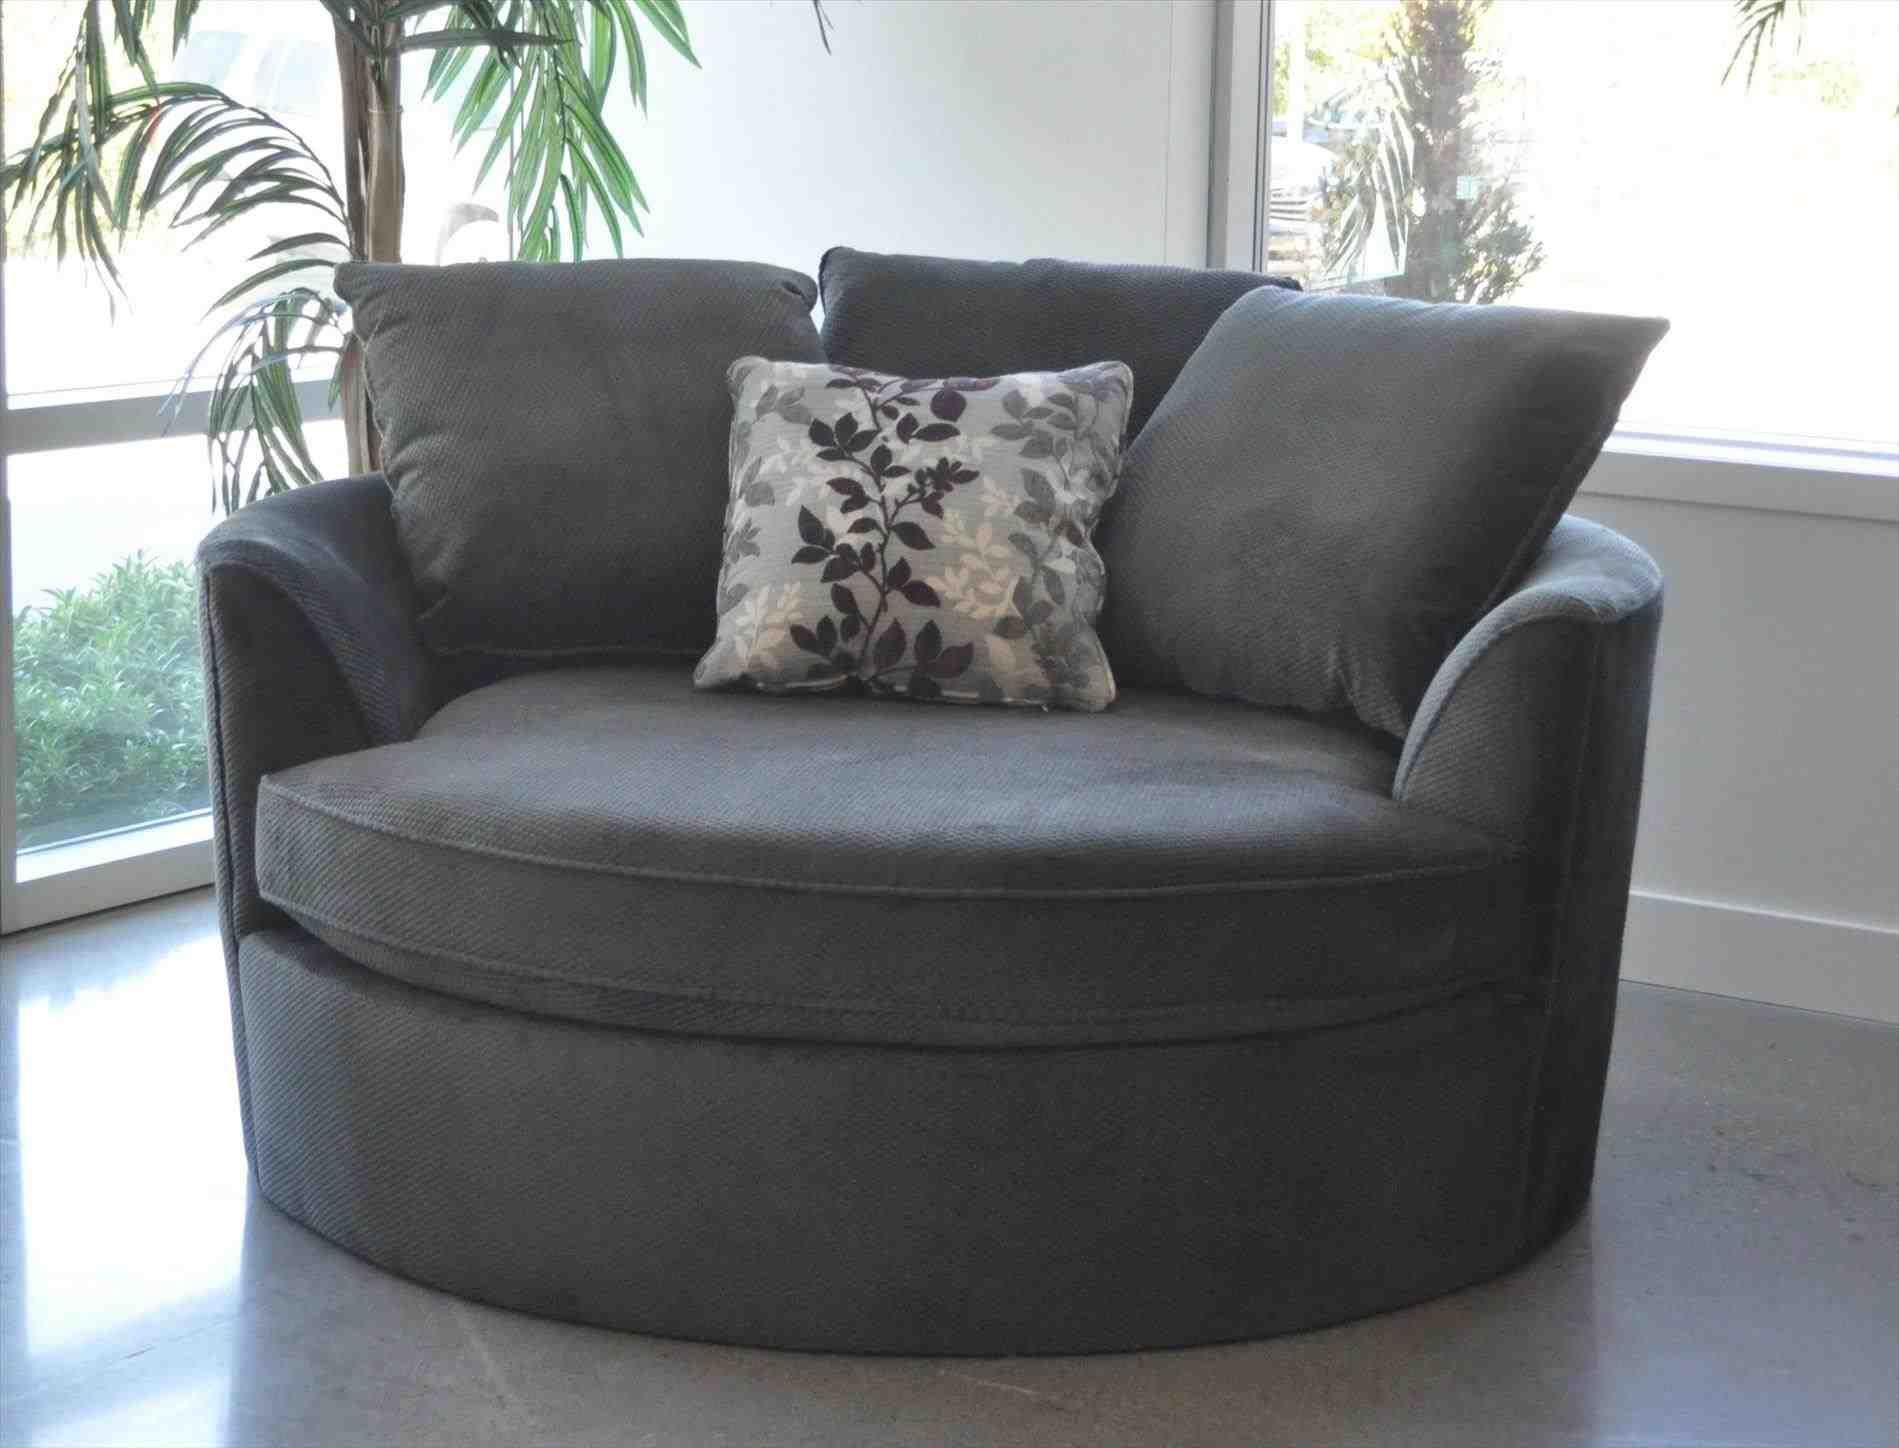 Snuggle Chair And A Half Sofa Cuddle Set Tehranmix Decoration With Regard To 3 Seater Image Of Recliner Crushed